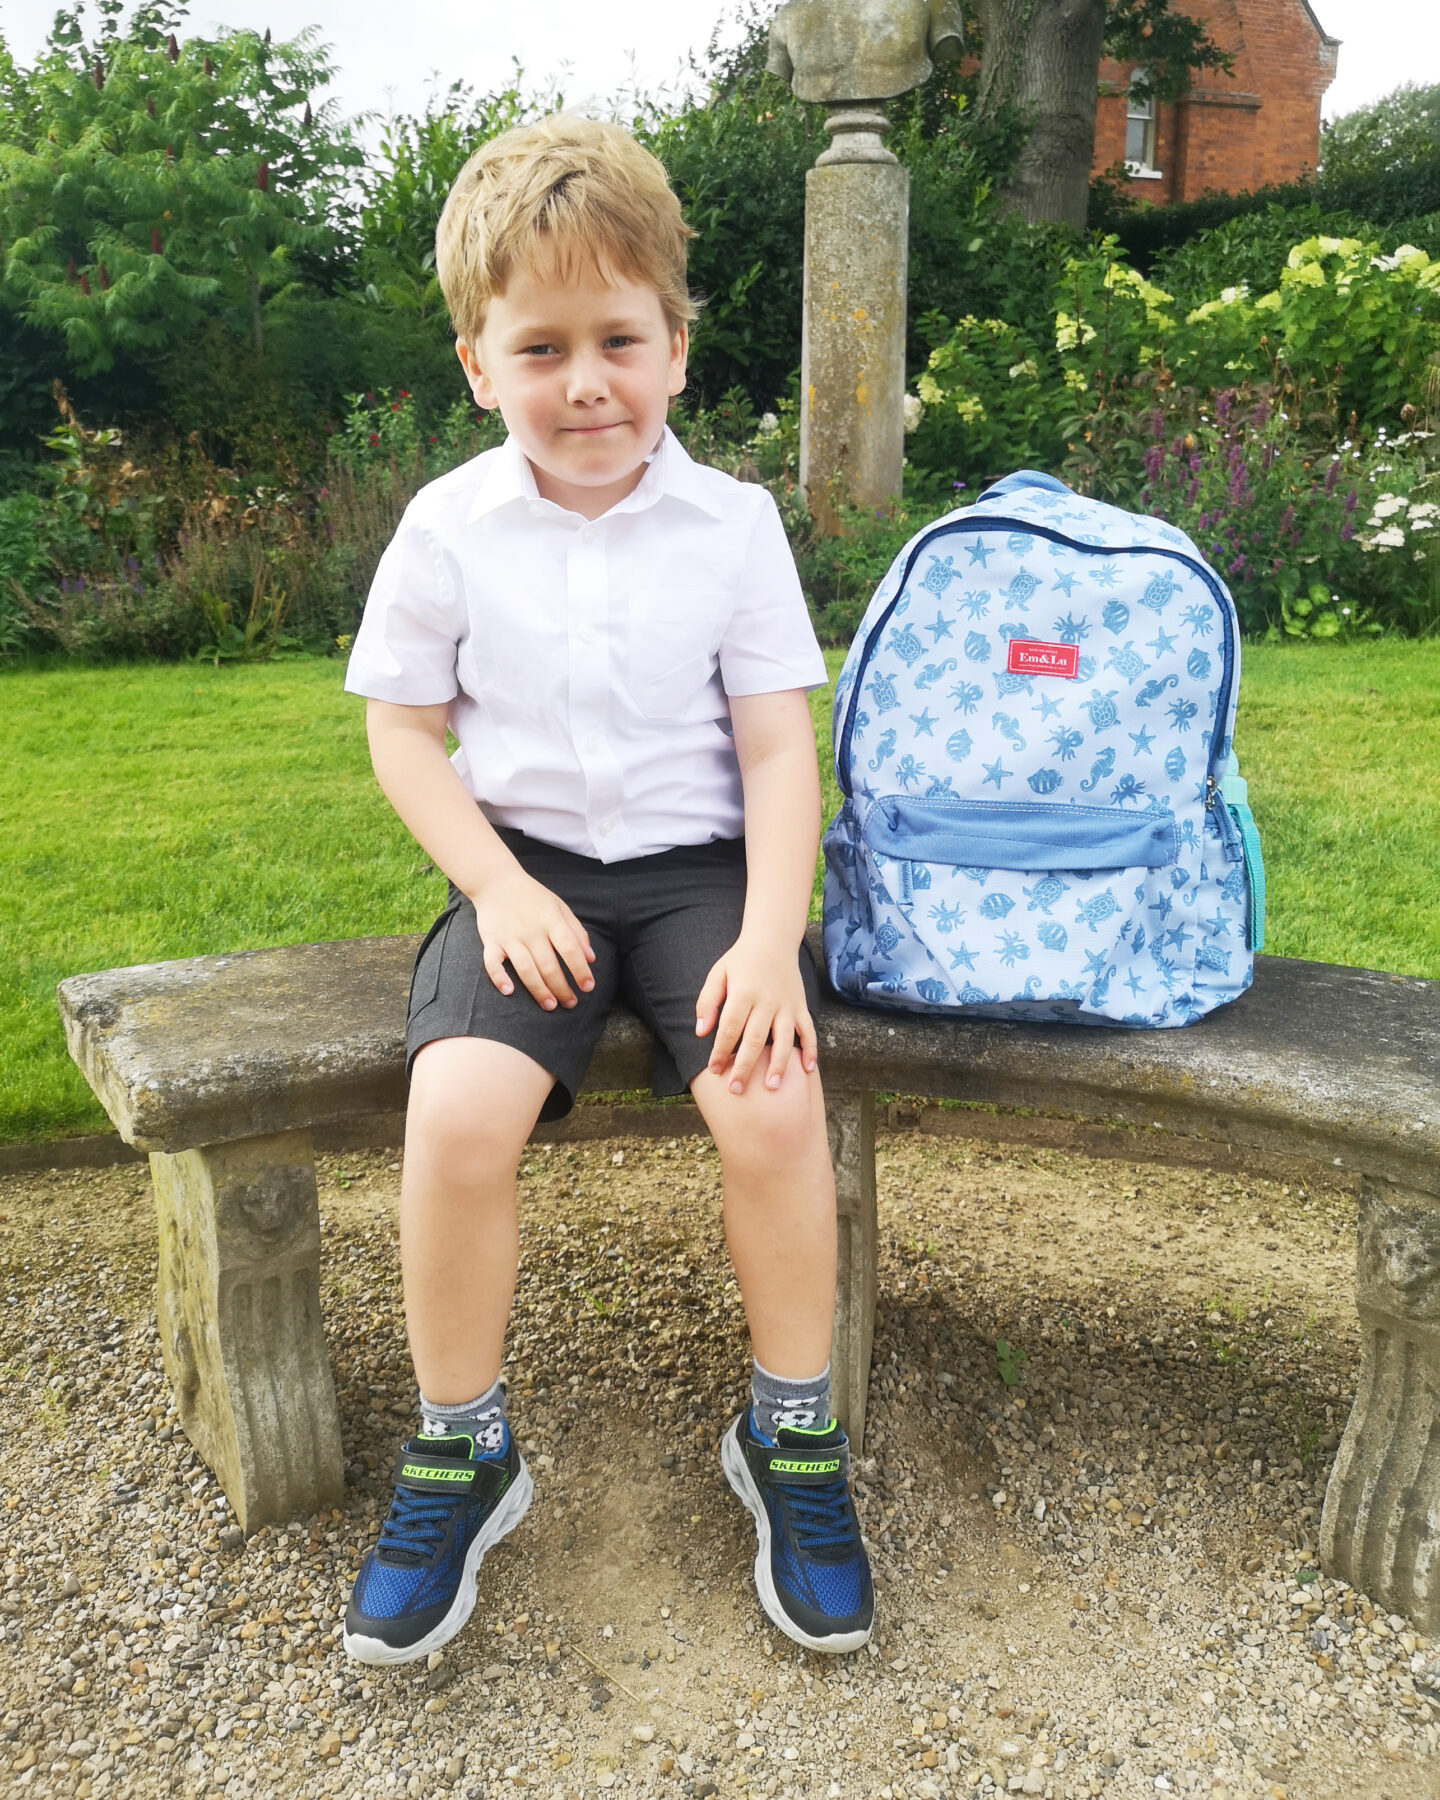 Back To School Em & Lu Sets, Back To School Essentials, Backpack, Em & Lu, English Prints, Vintages vibes, win, Giveaway, the Frenchie Mummy, competition, Ocean Print, Boys Backpack, Rucksack